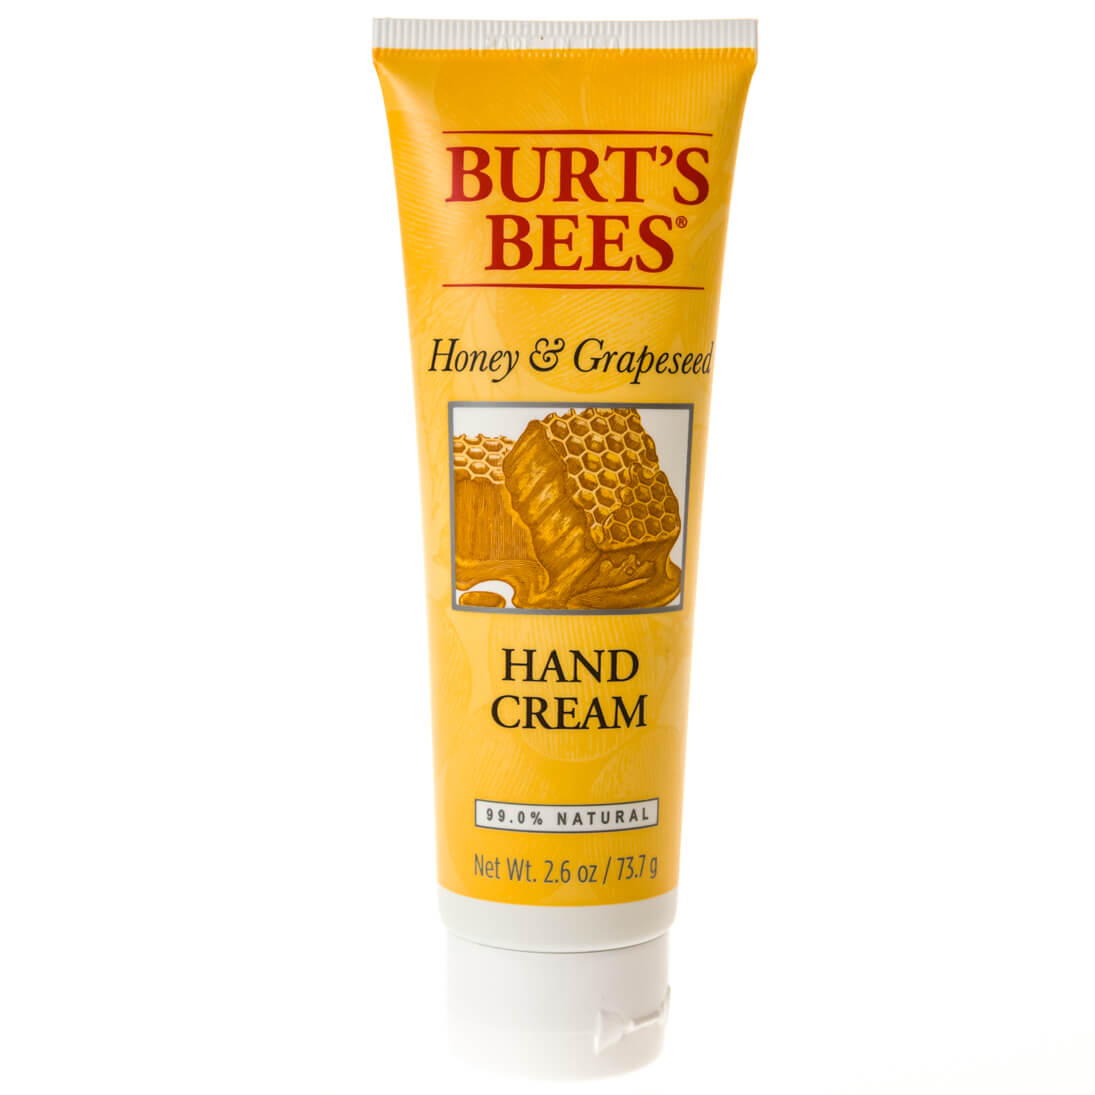 Shop Burt's Bees Hand Cream